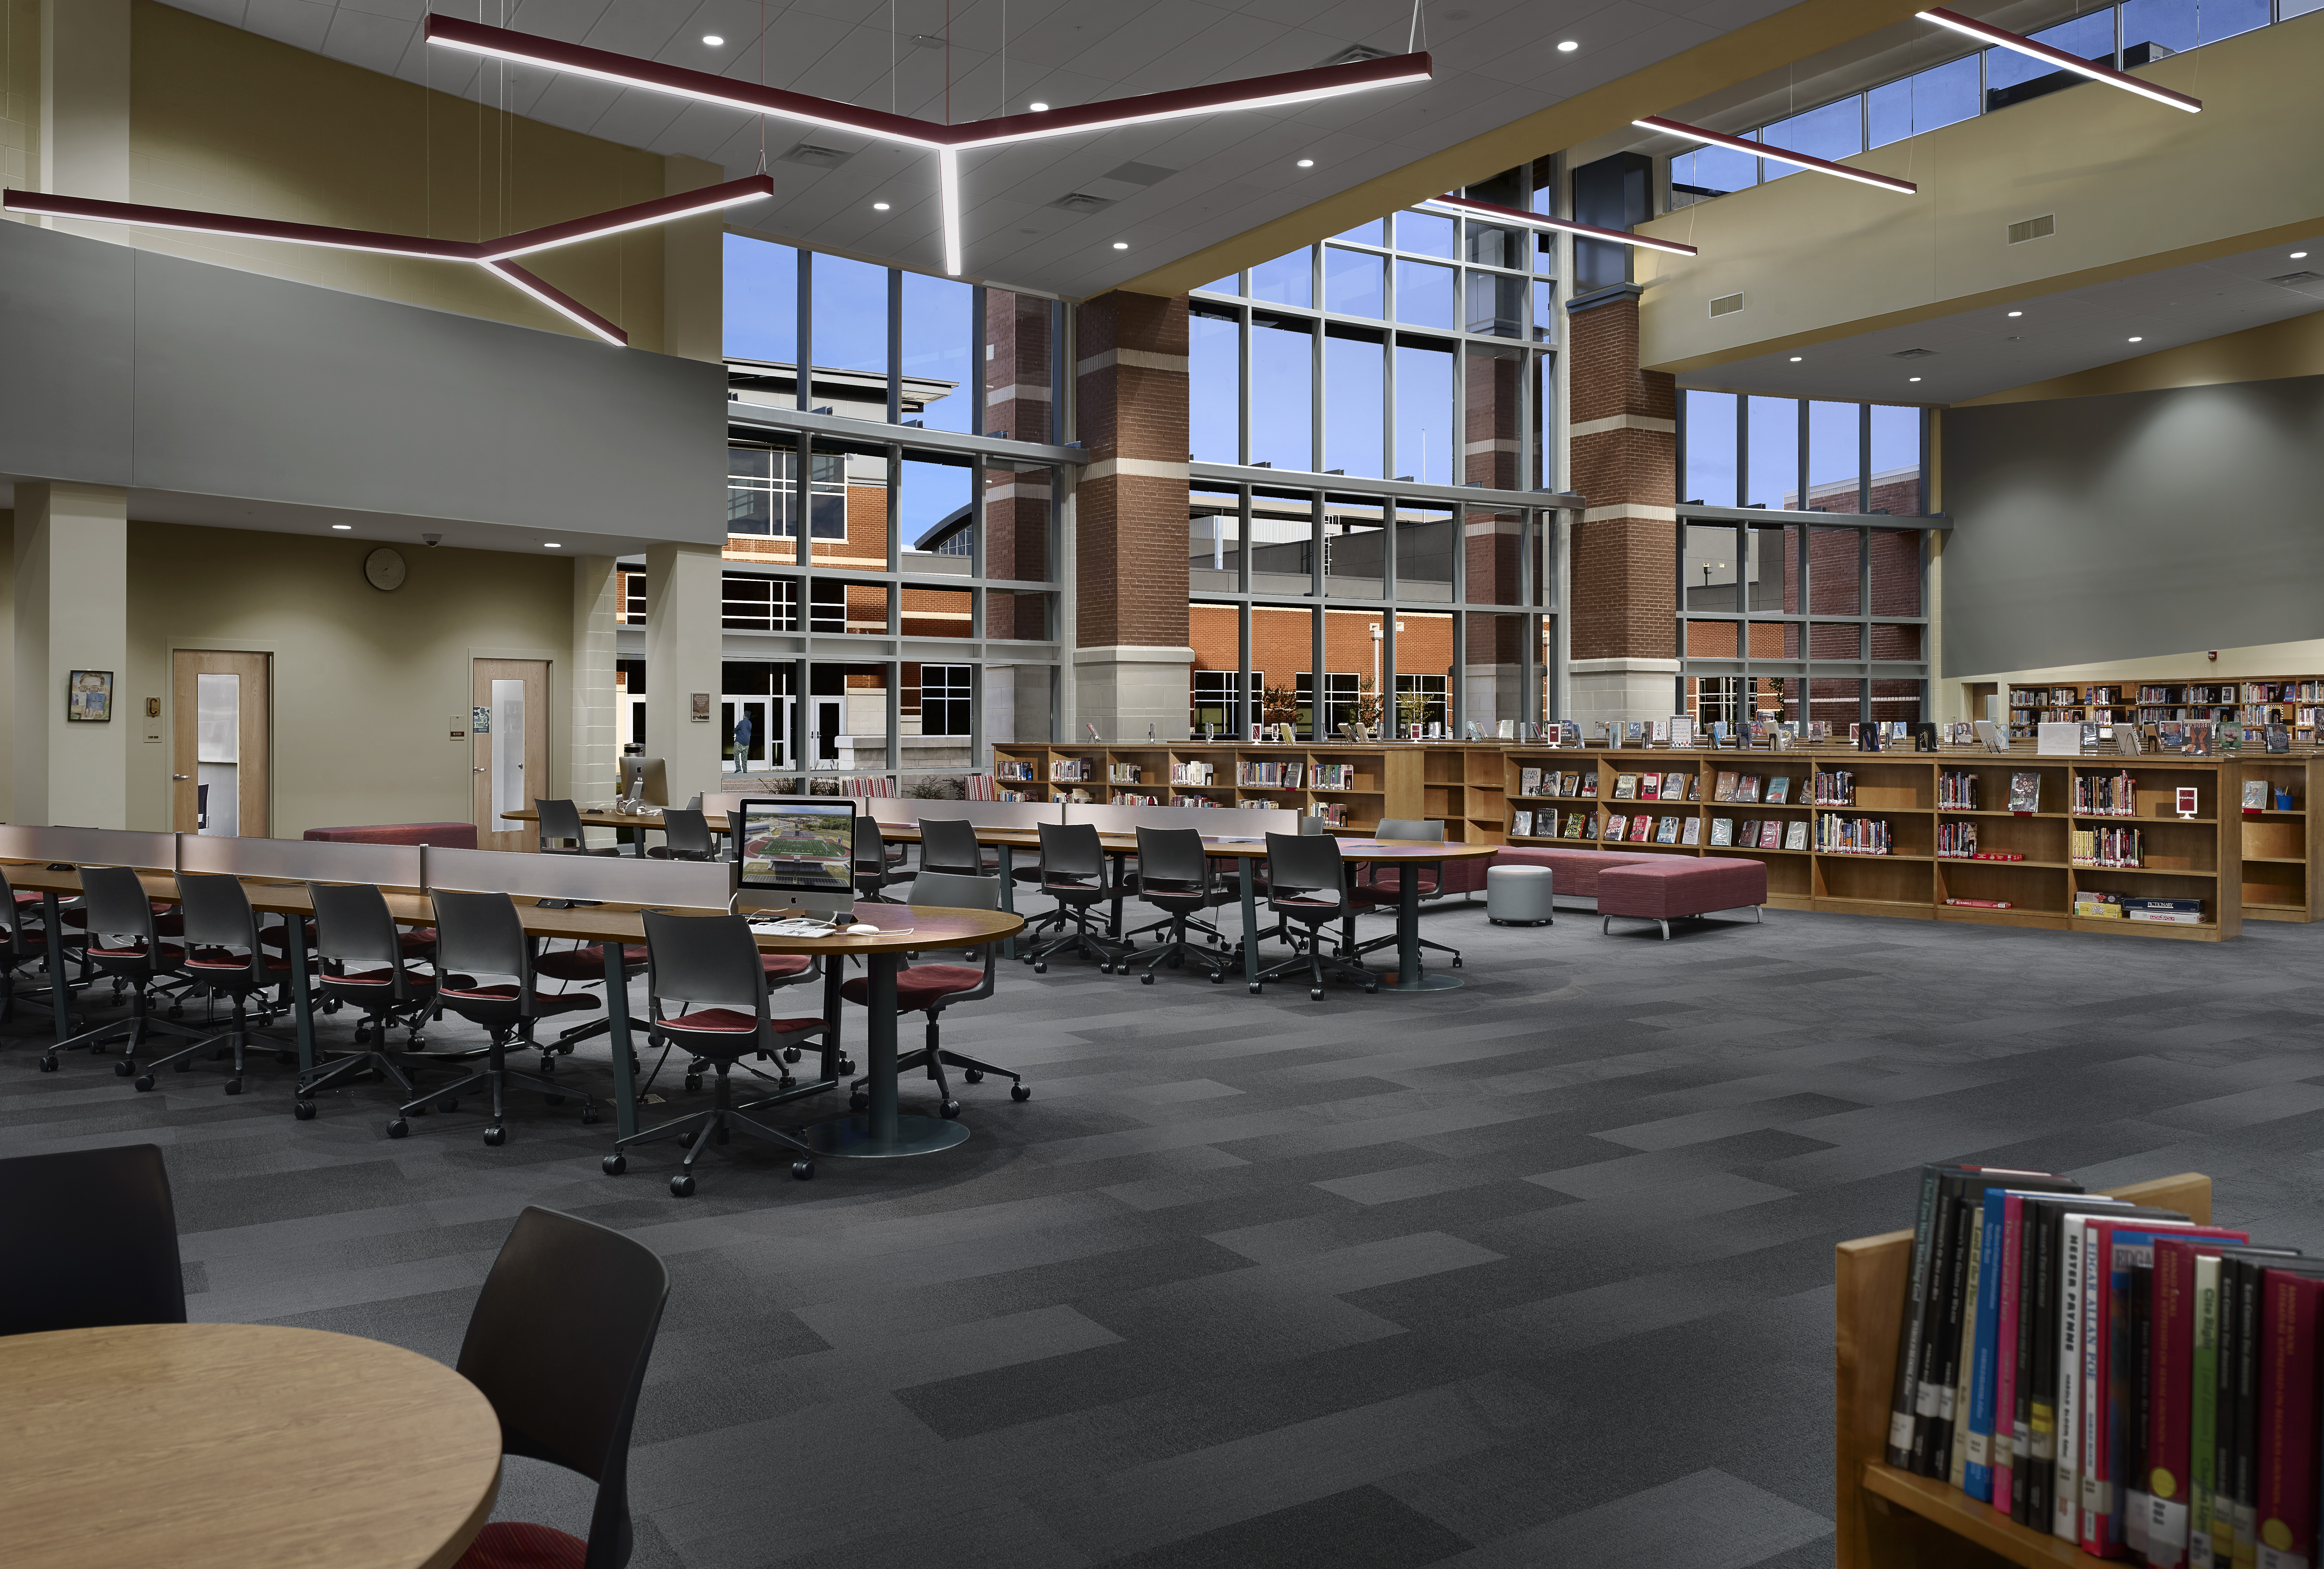 01_FRLF_CHS_Library